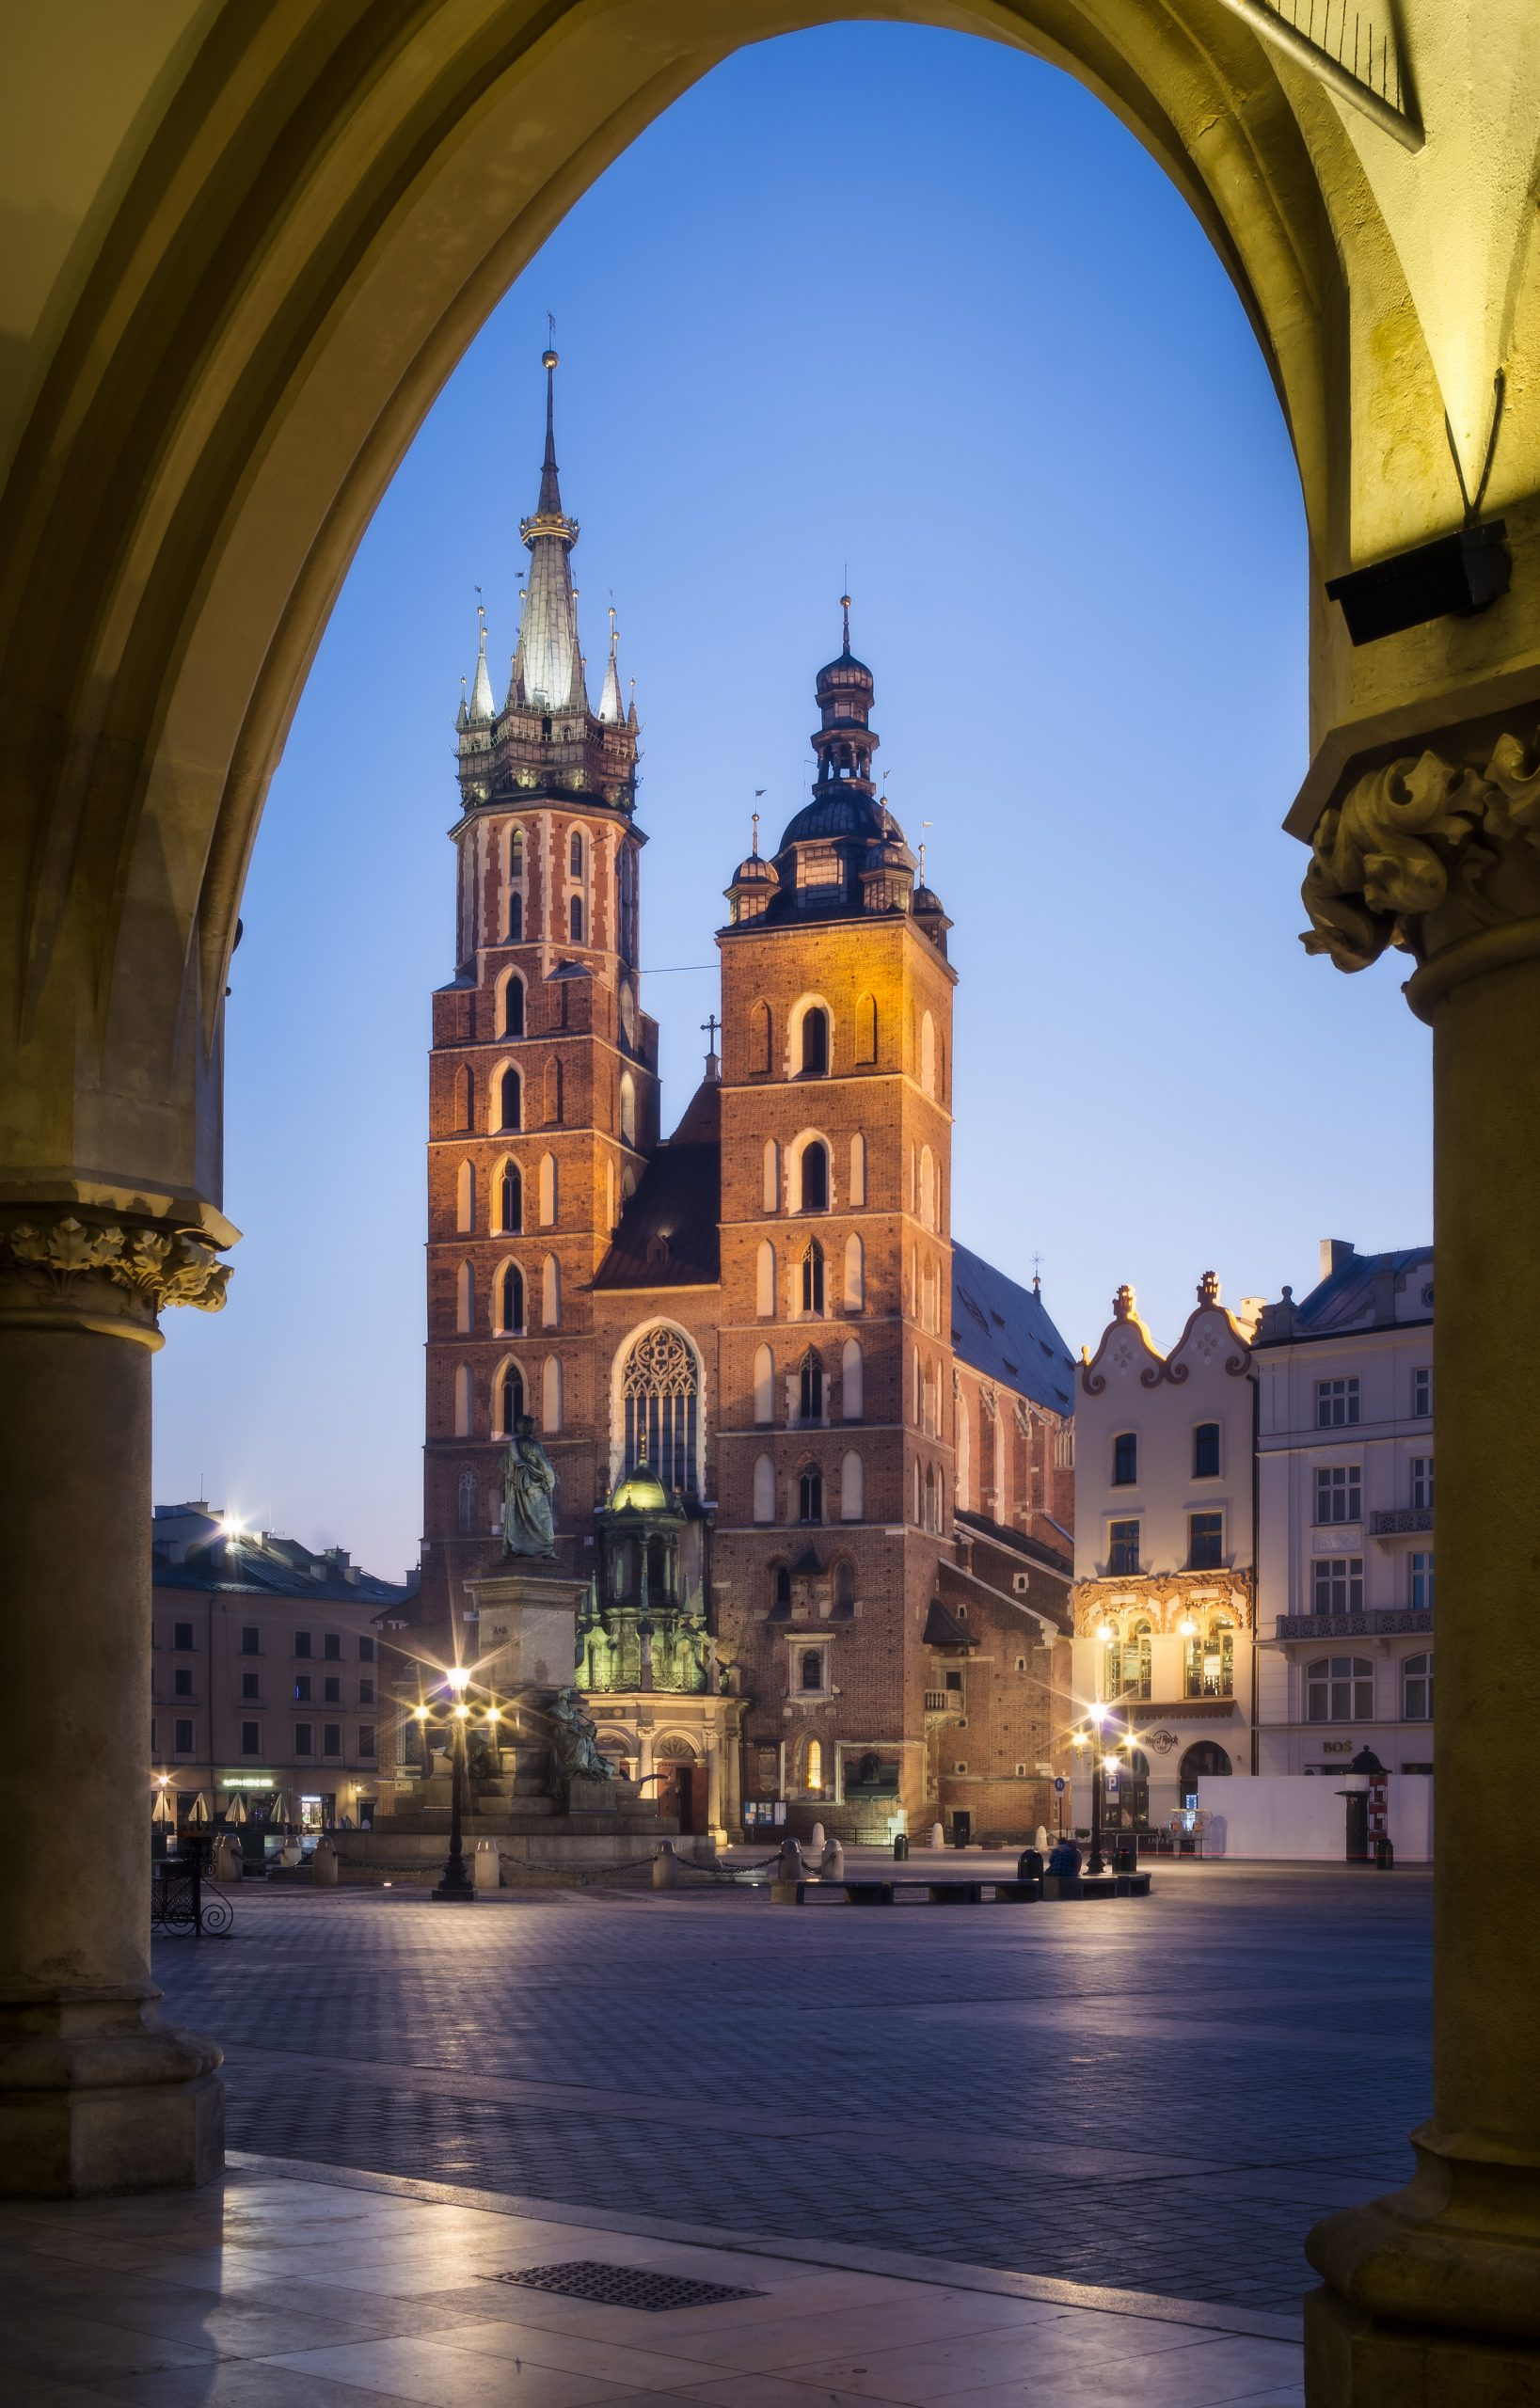 St Mary's Church Krakow